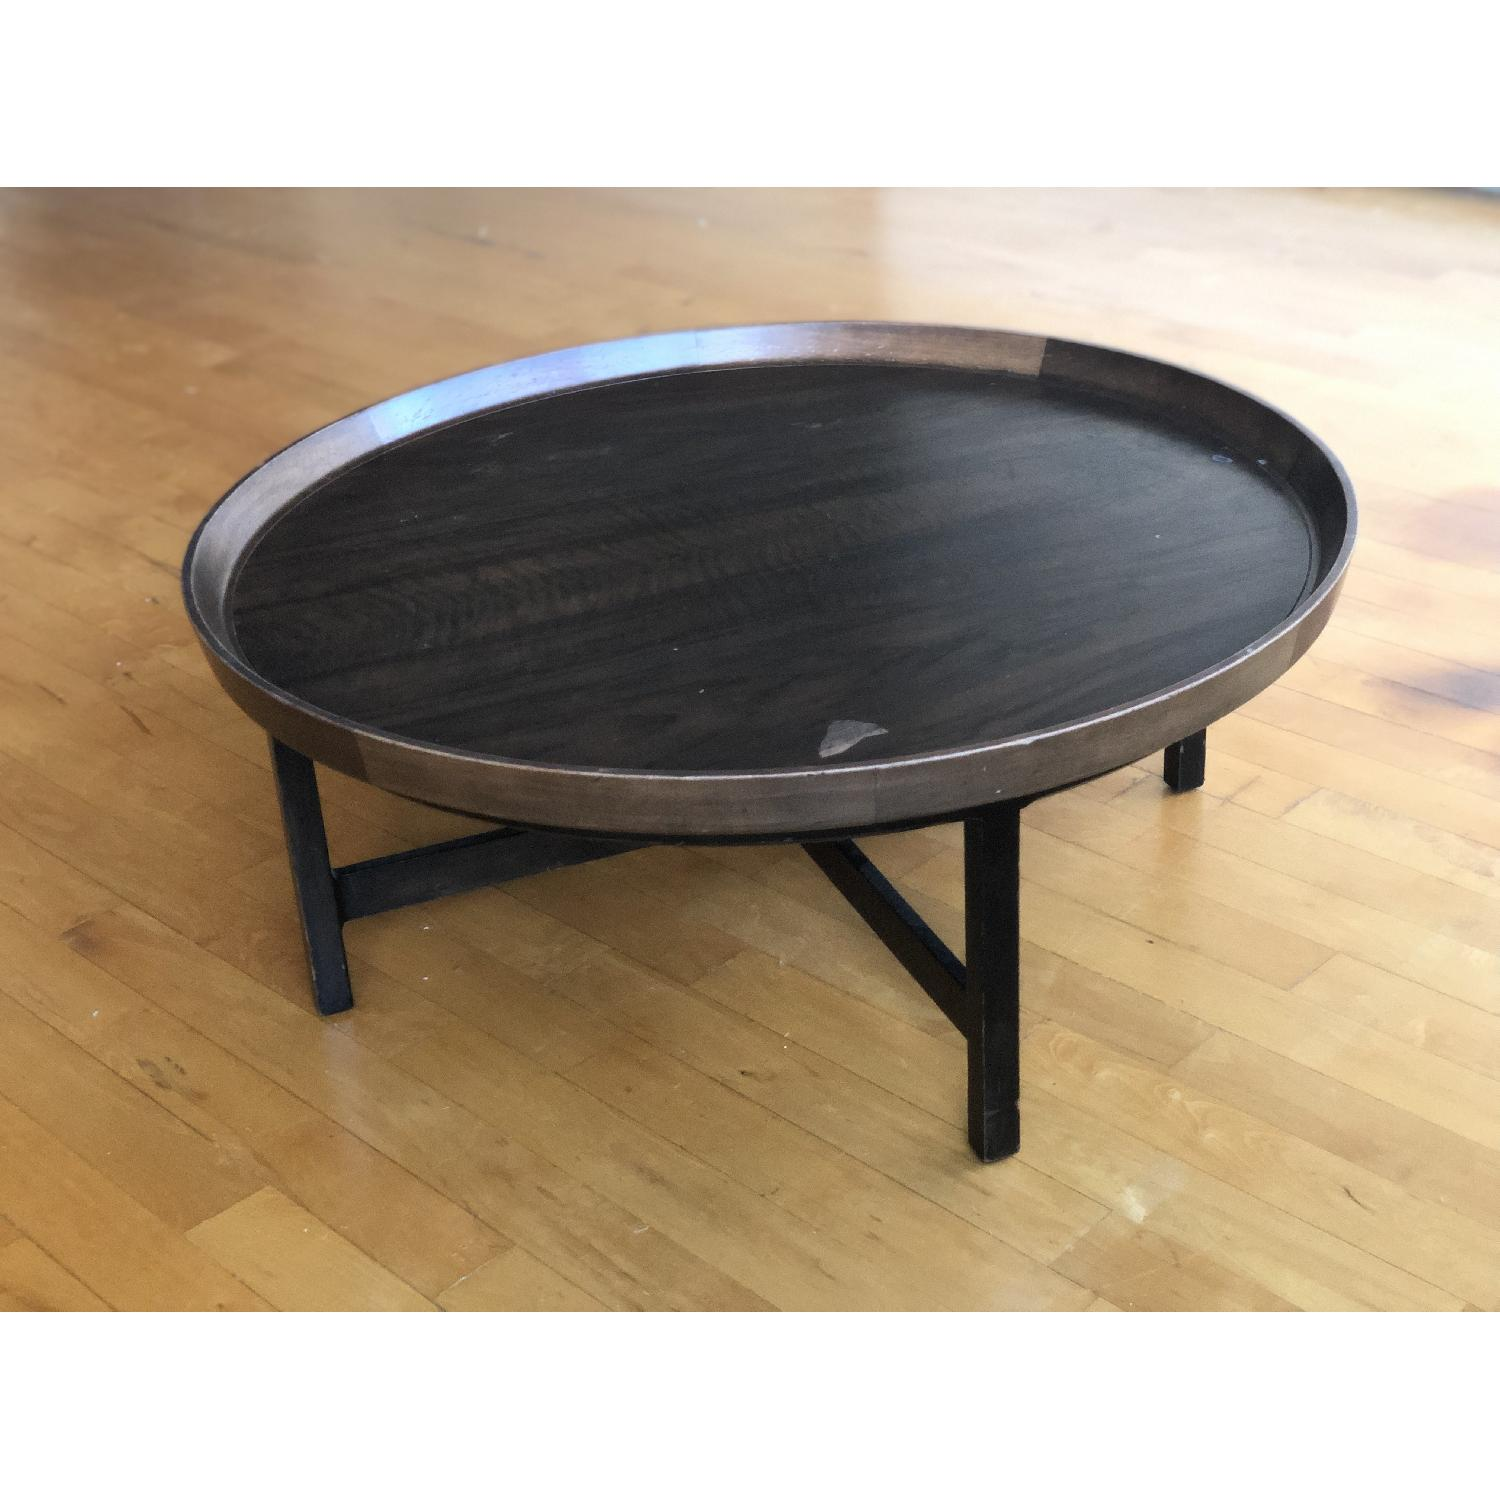 Antique Solid Wood Round Coffee Table - image-10